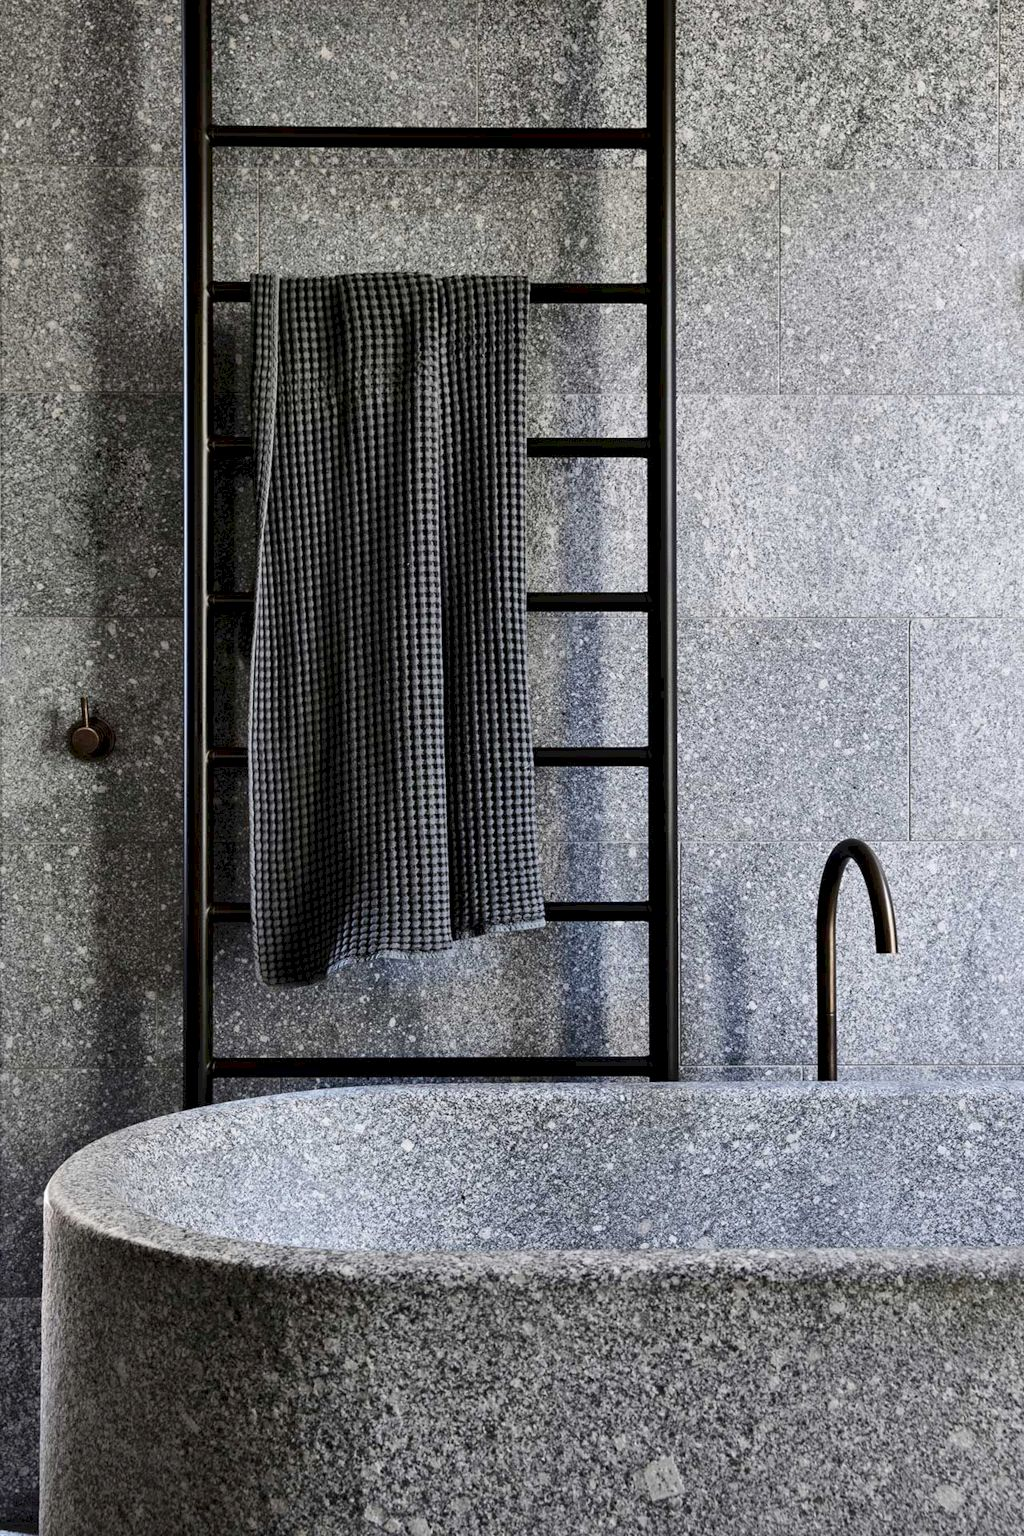 Creative bathroom updates mixing modern trend with simple 60s terrazzo style giving a brilliant contemporary balance Image 7